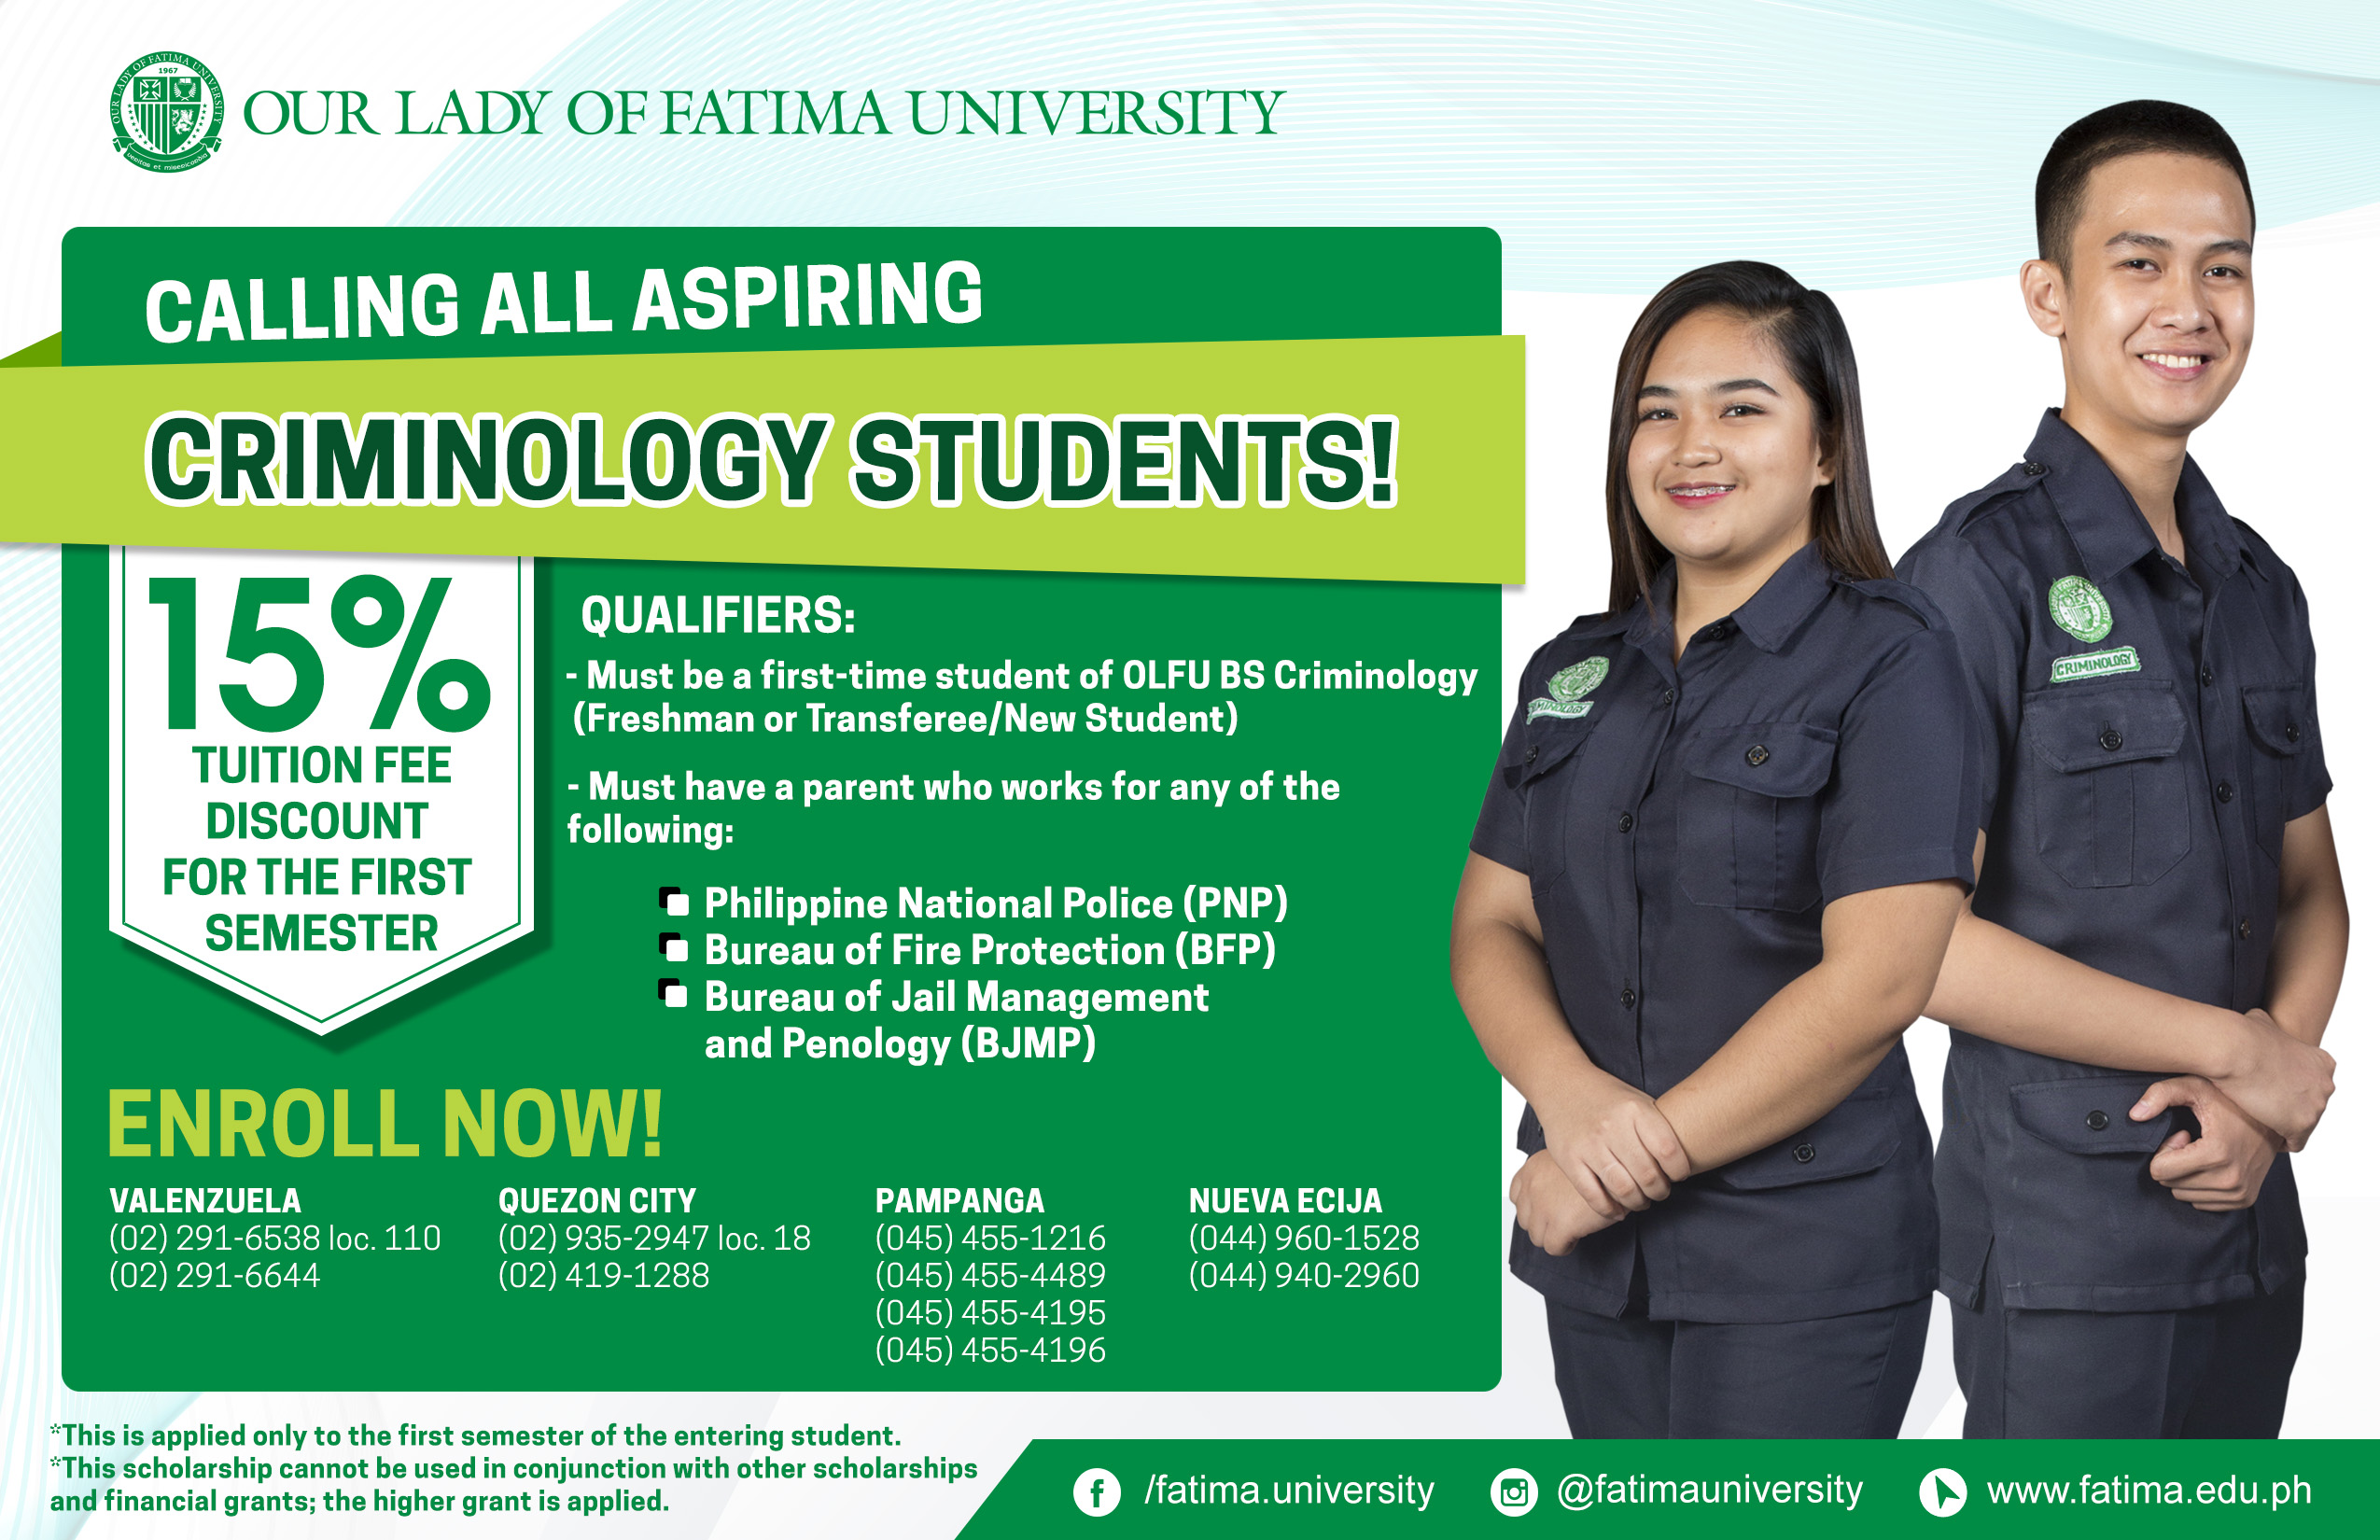 OLFU offers Tuition Fee Discount to qualified Criminology Enrollees